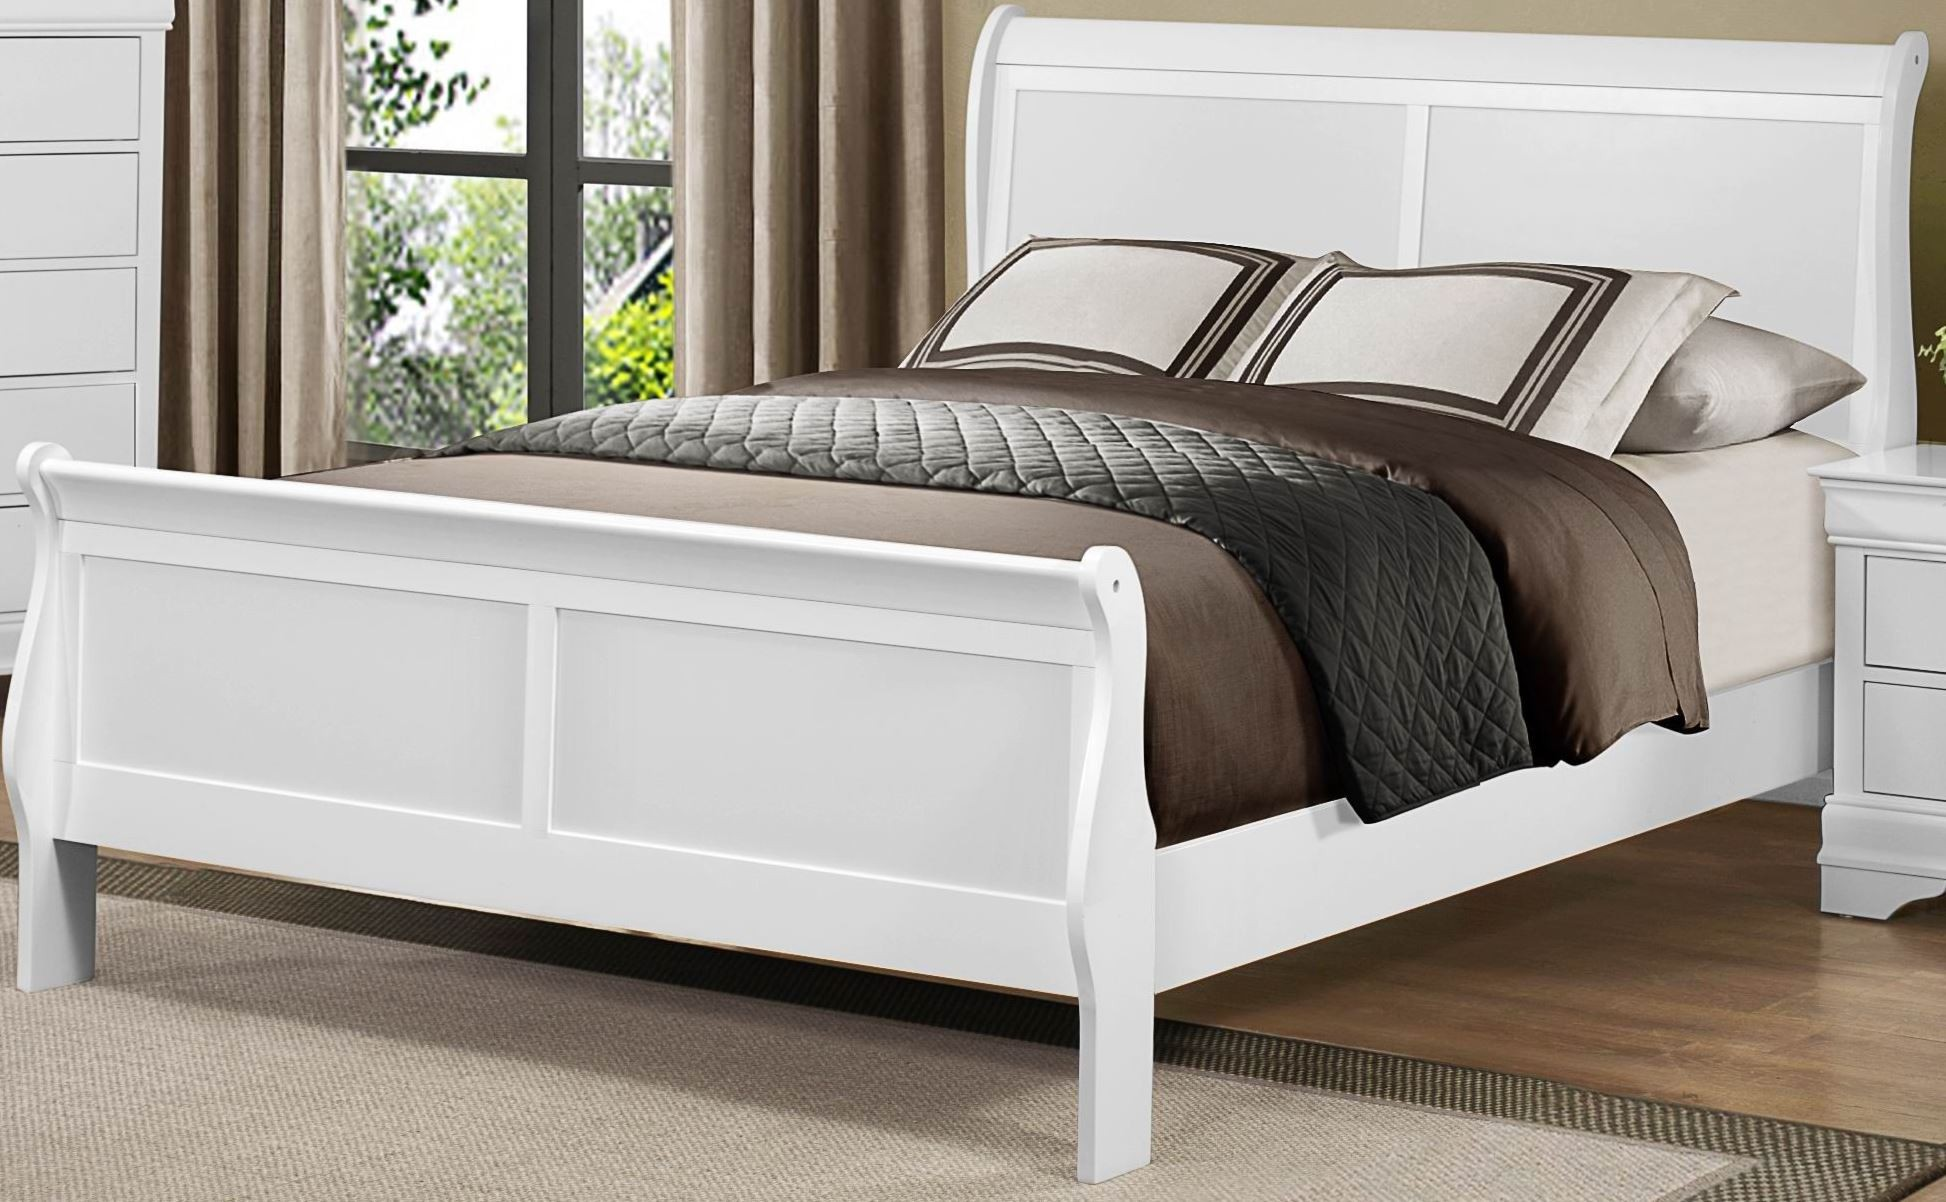 Mayville burnished white full sleigh bed from homelegance 2147fw 1 coleman furniture for Full size sleigh bedroom sets